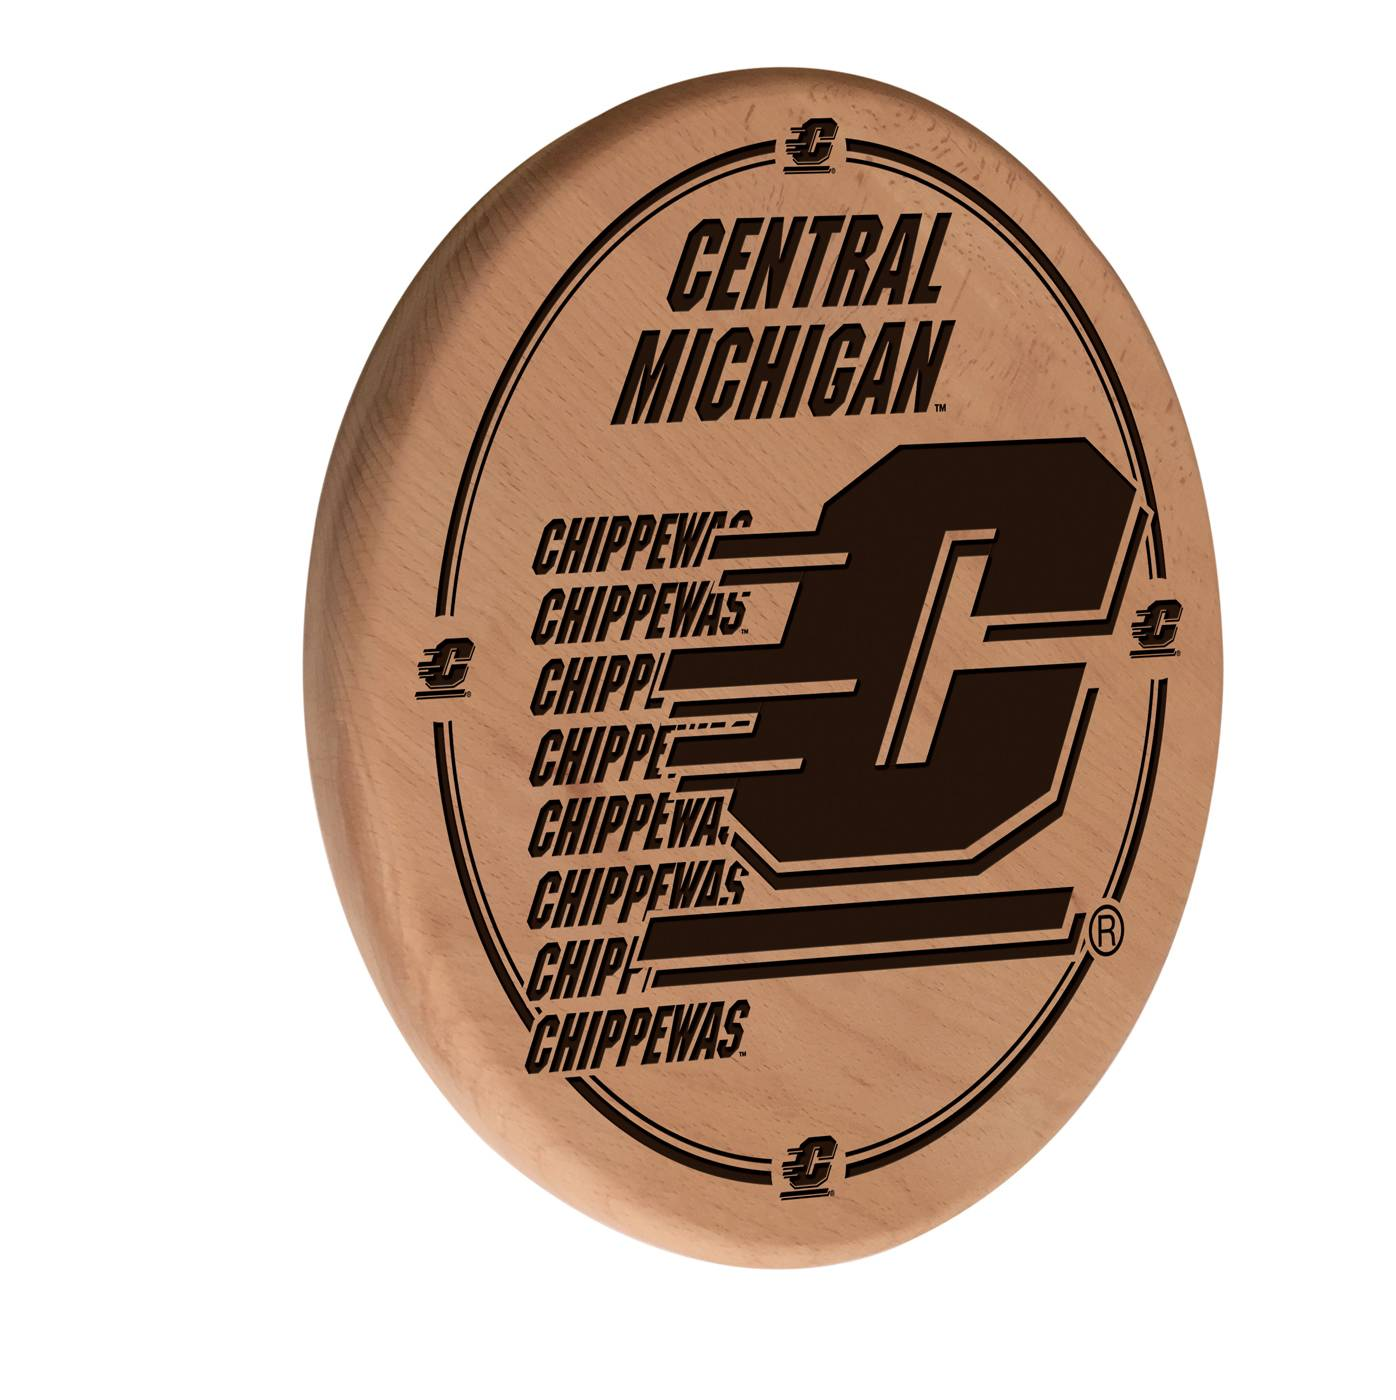 Central Michigan Chippewas Laser Engraved Wood Sign